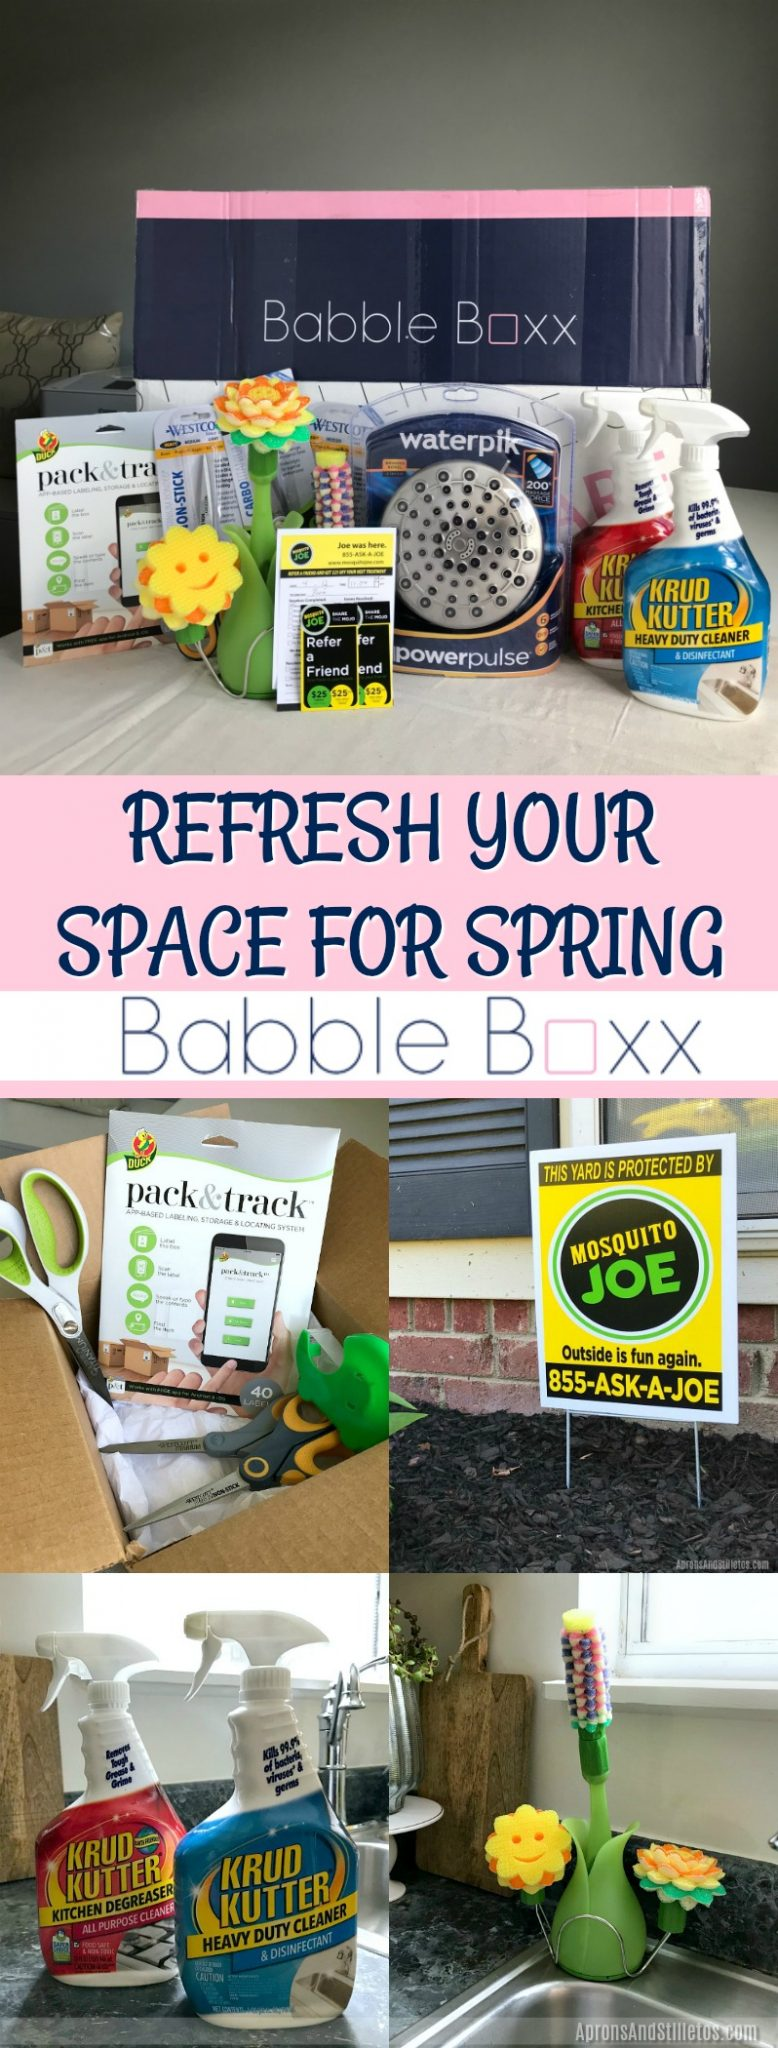 REFRESH YOUR SPACE FOR SPRING